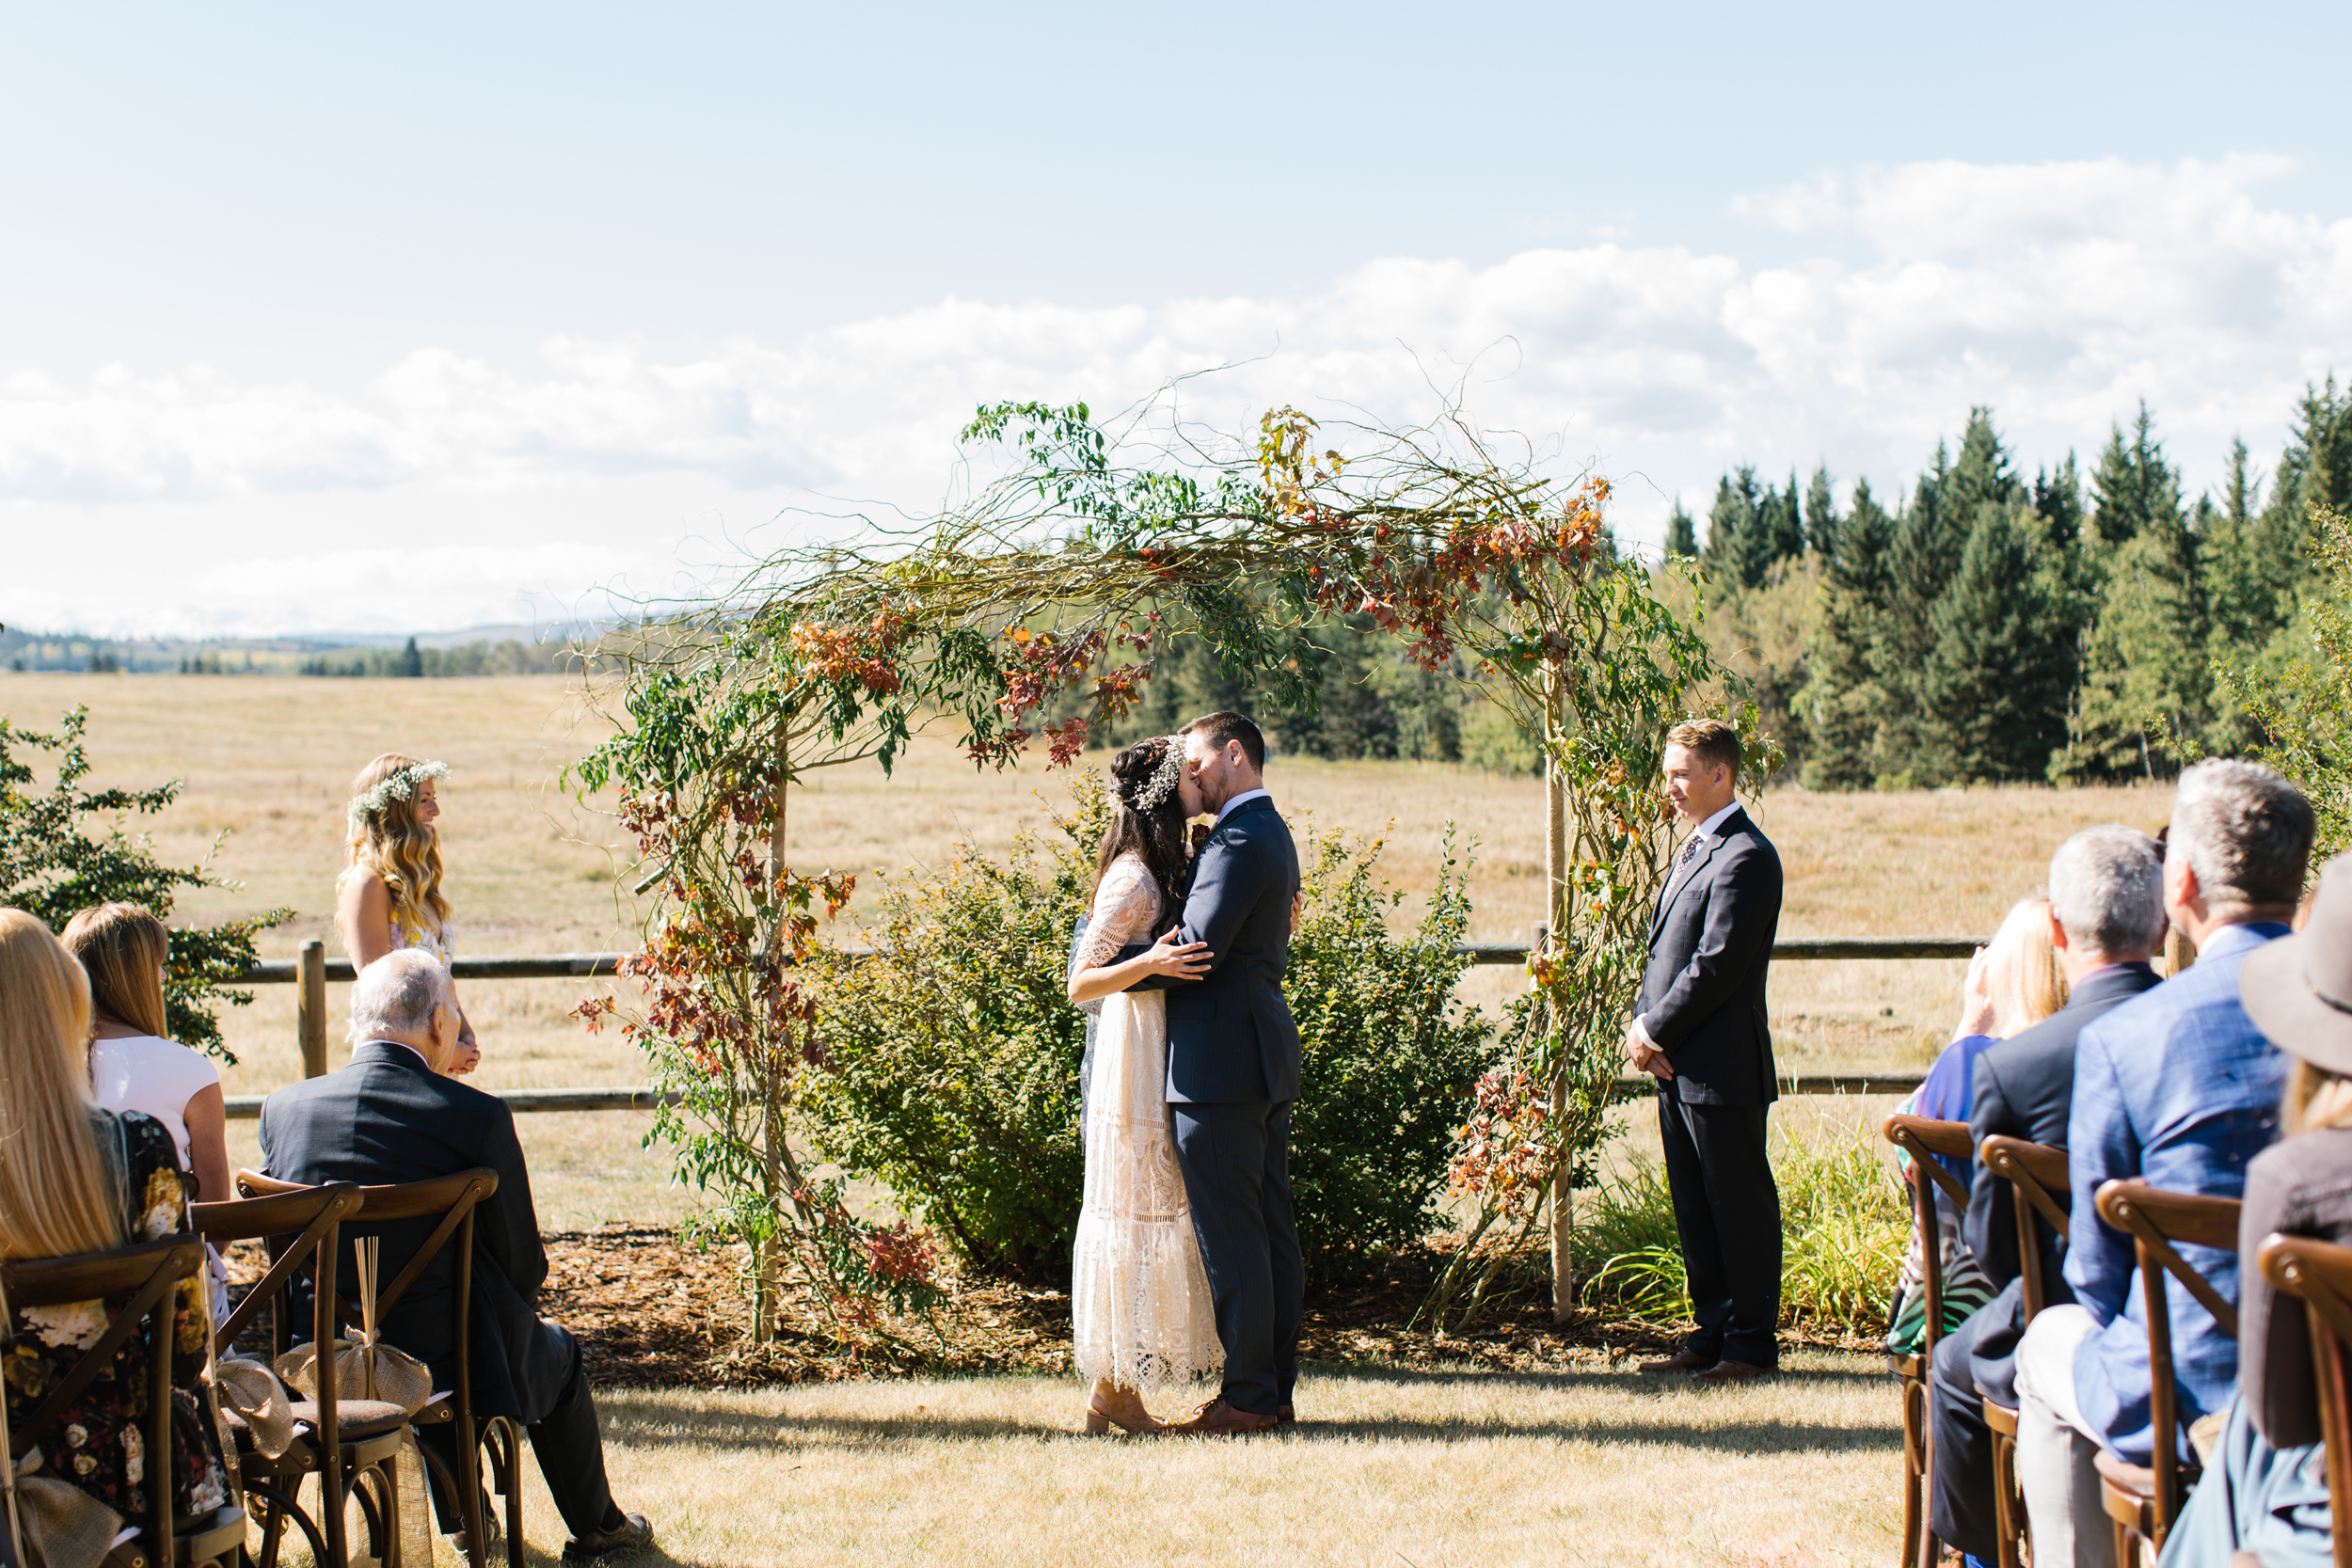 Calgary_Intimate_Backyard_Wedding0013.jpg